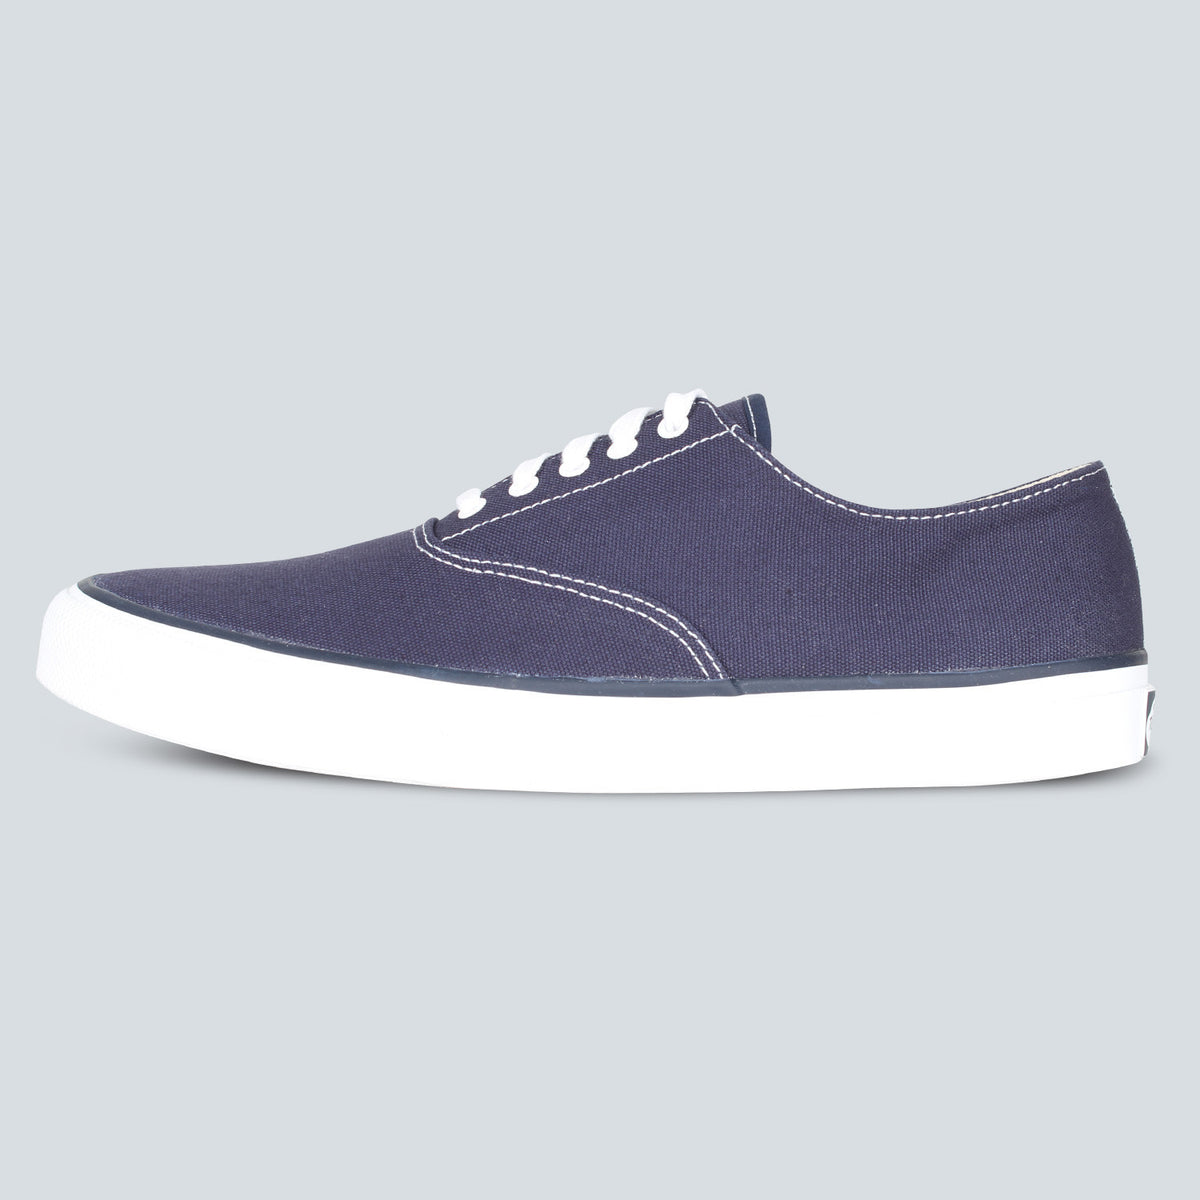 Sperry Topsider - CVO Japan Model - Navy/White